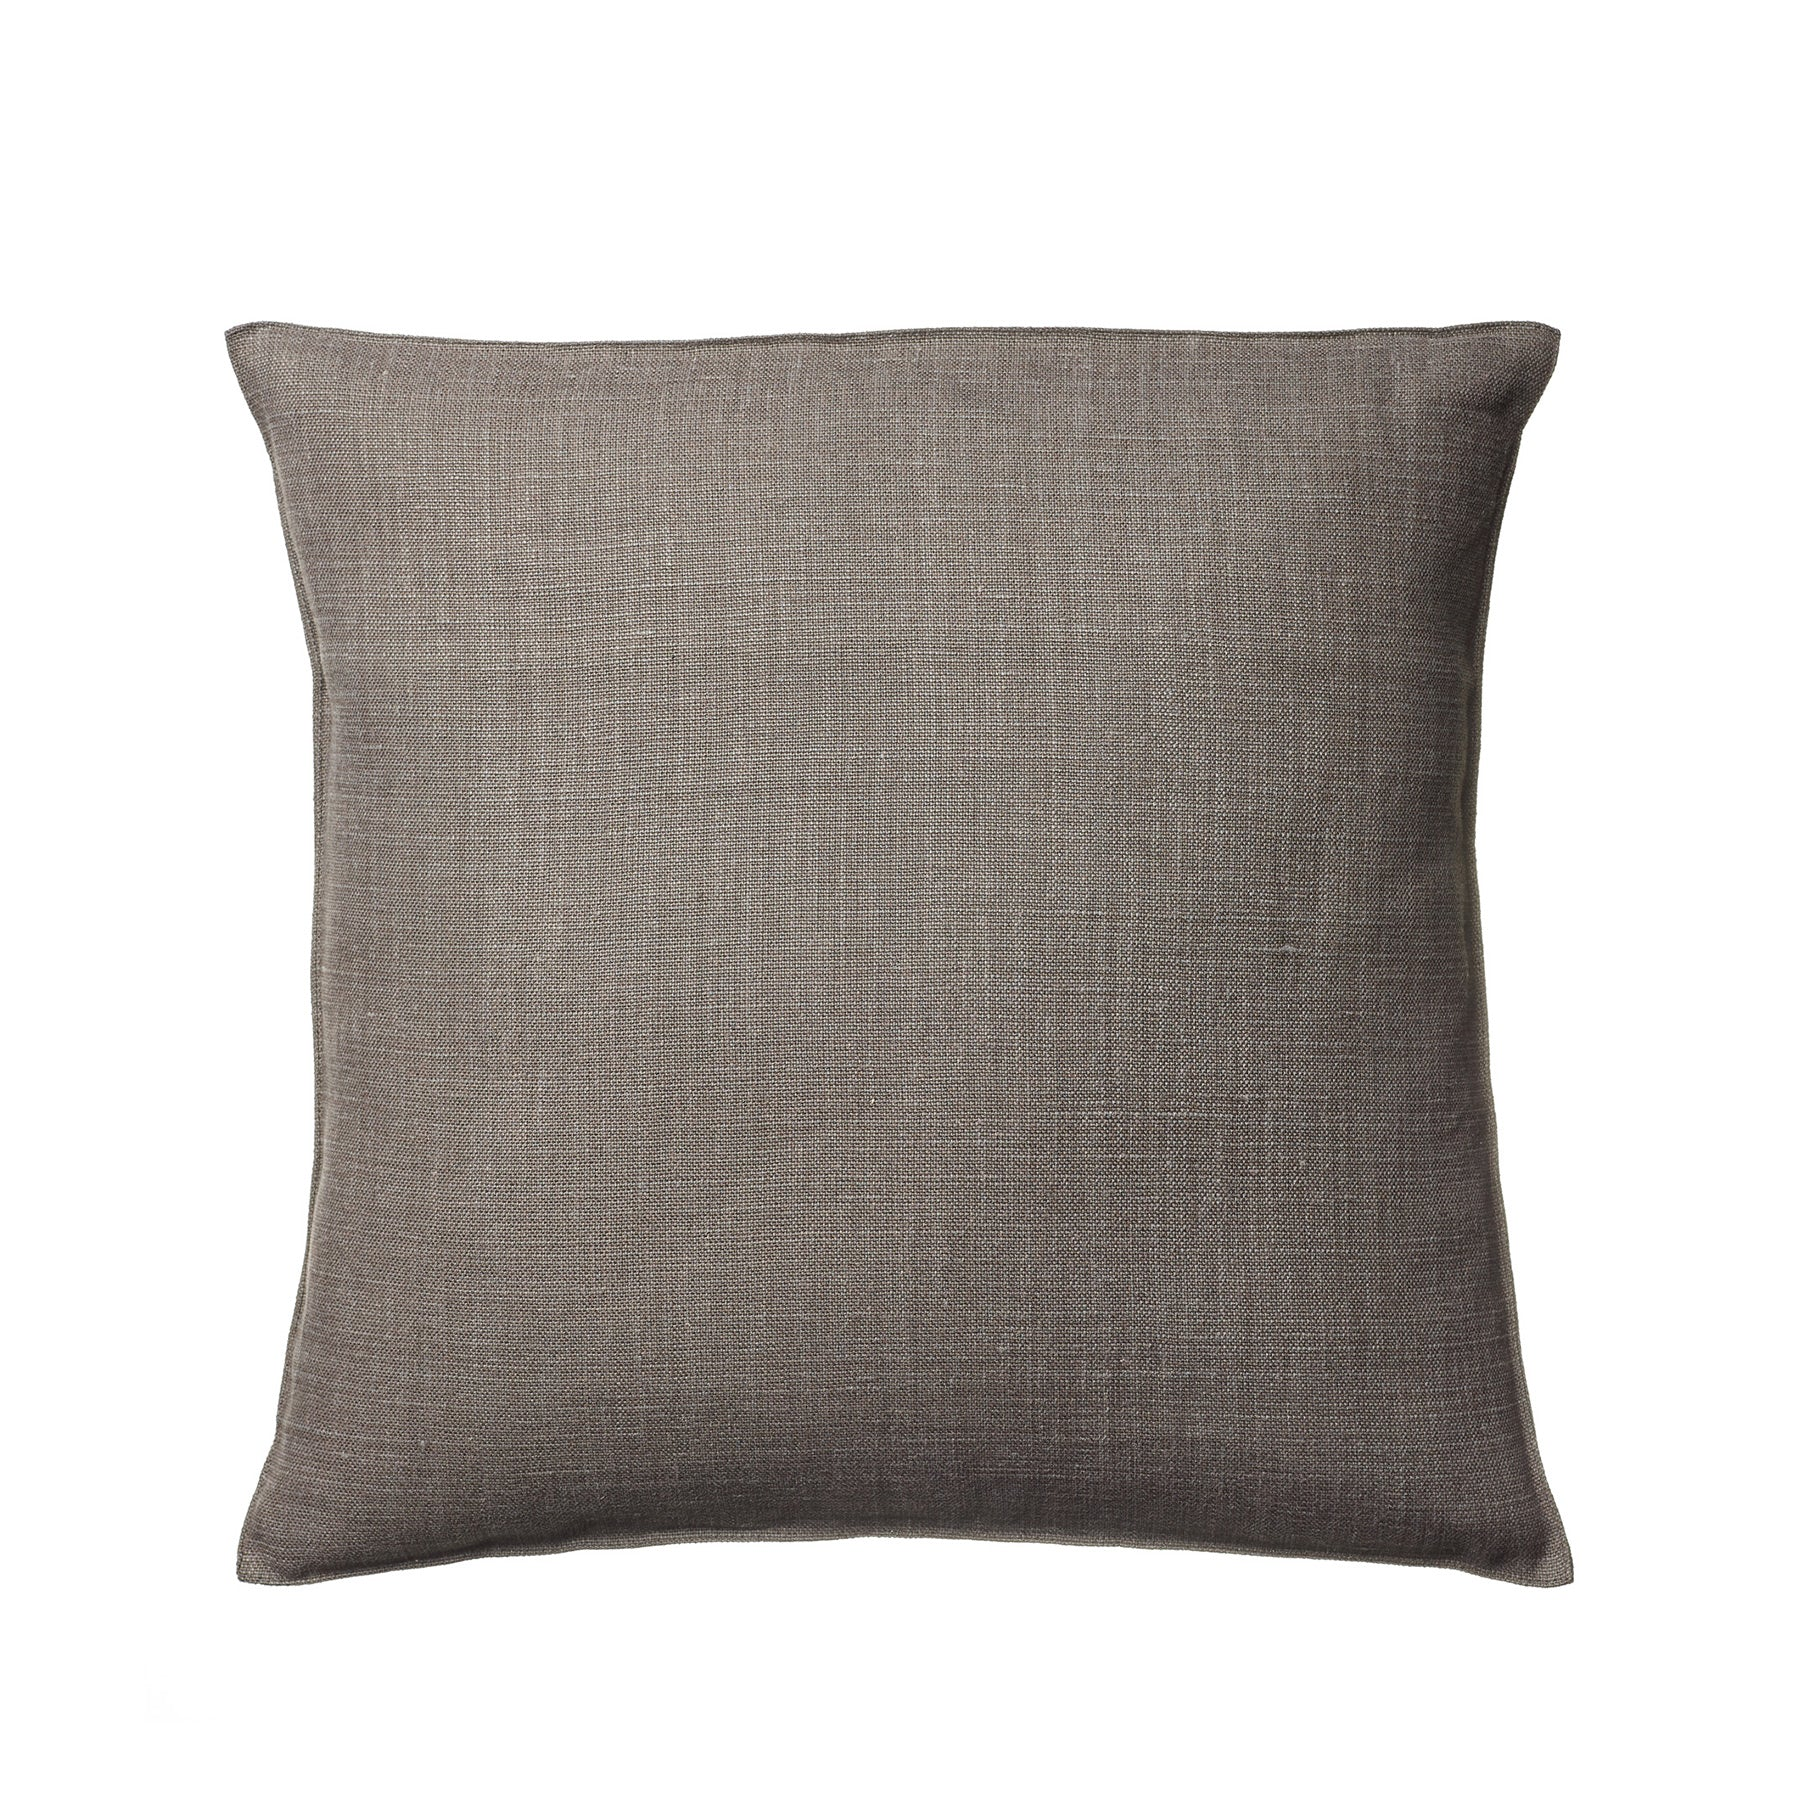 Linen Napoli Pillow in Cafe Noir Zoom Image 1